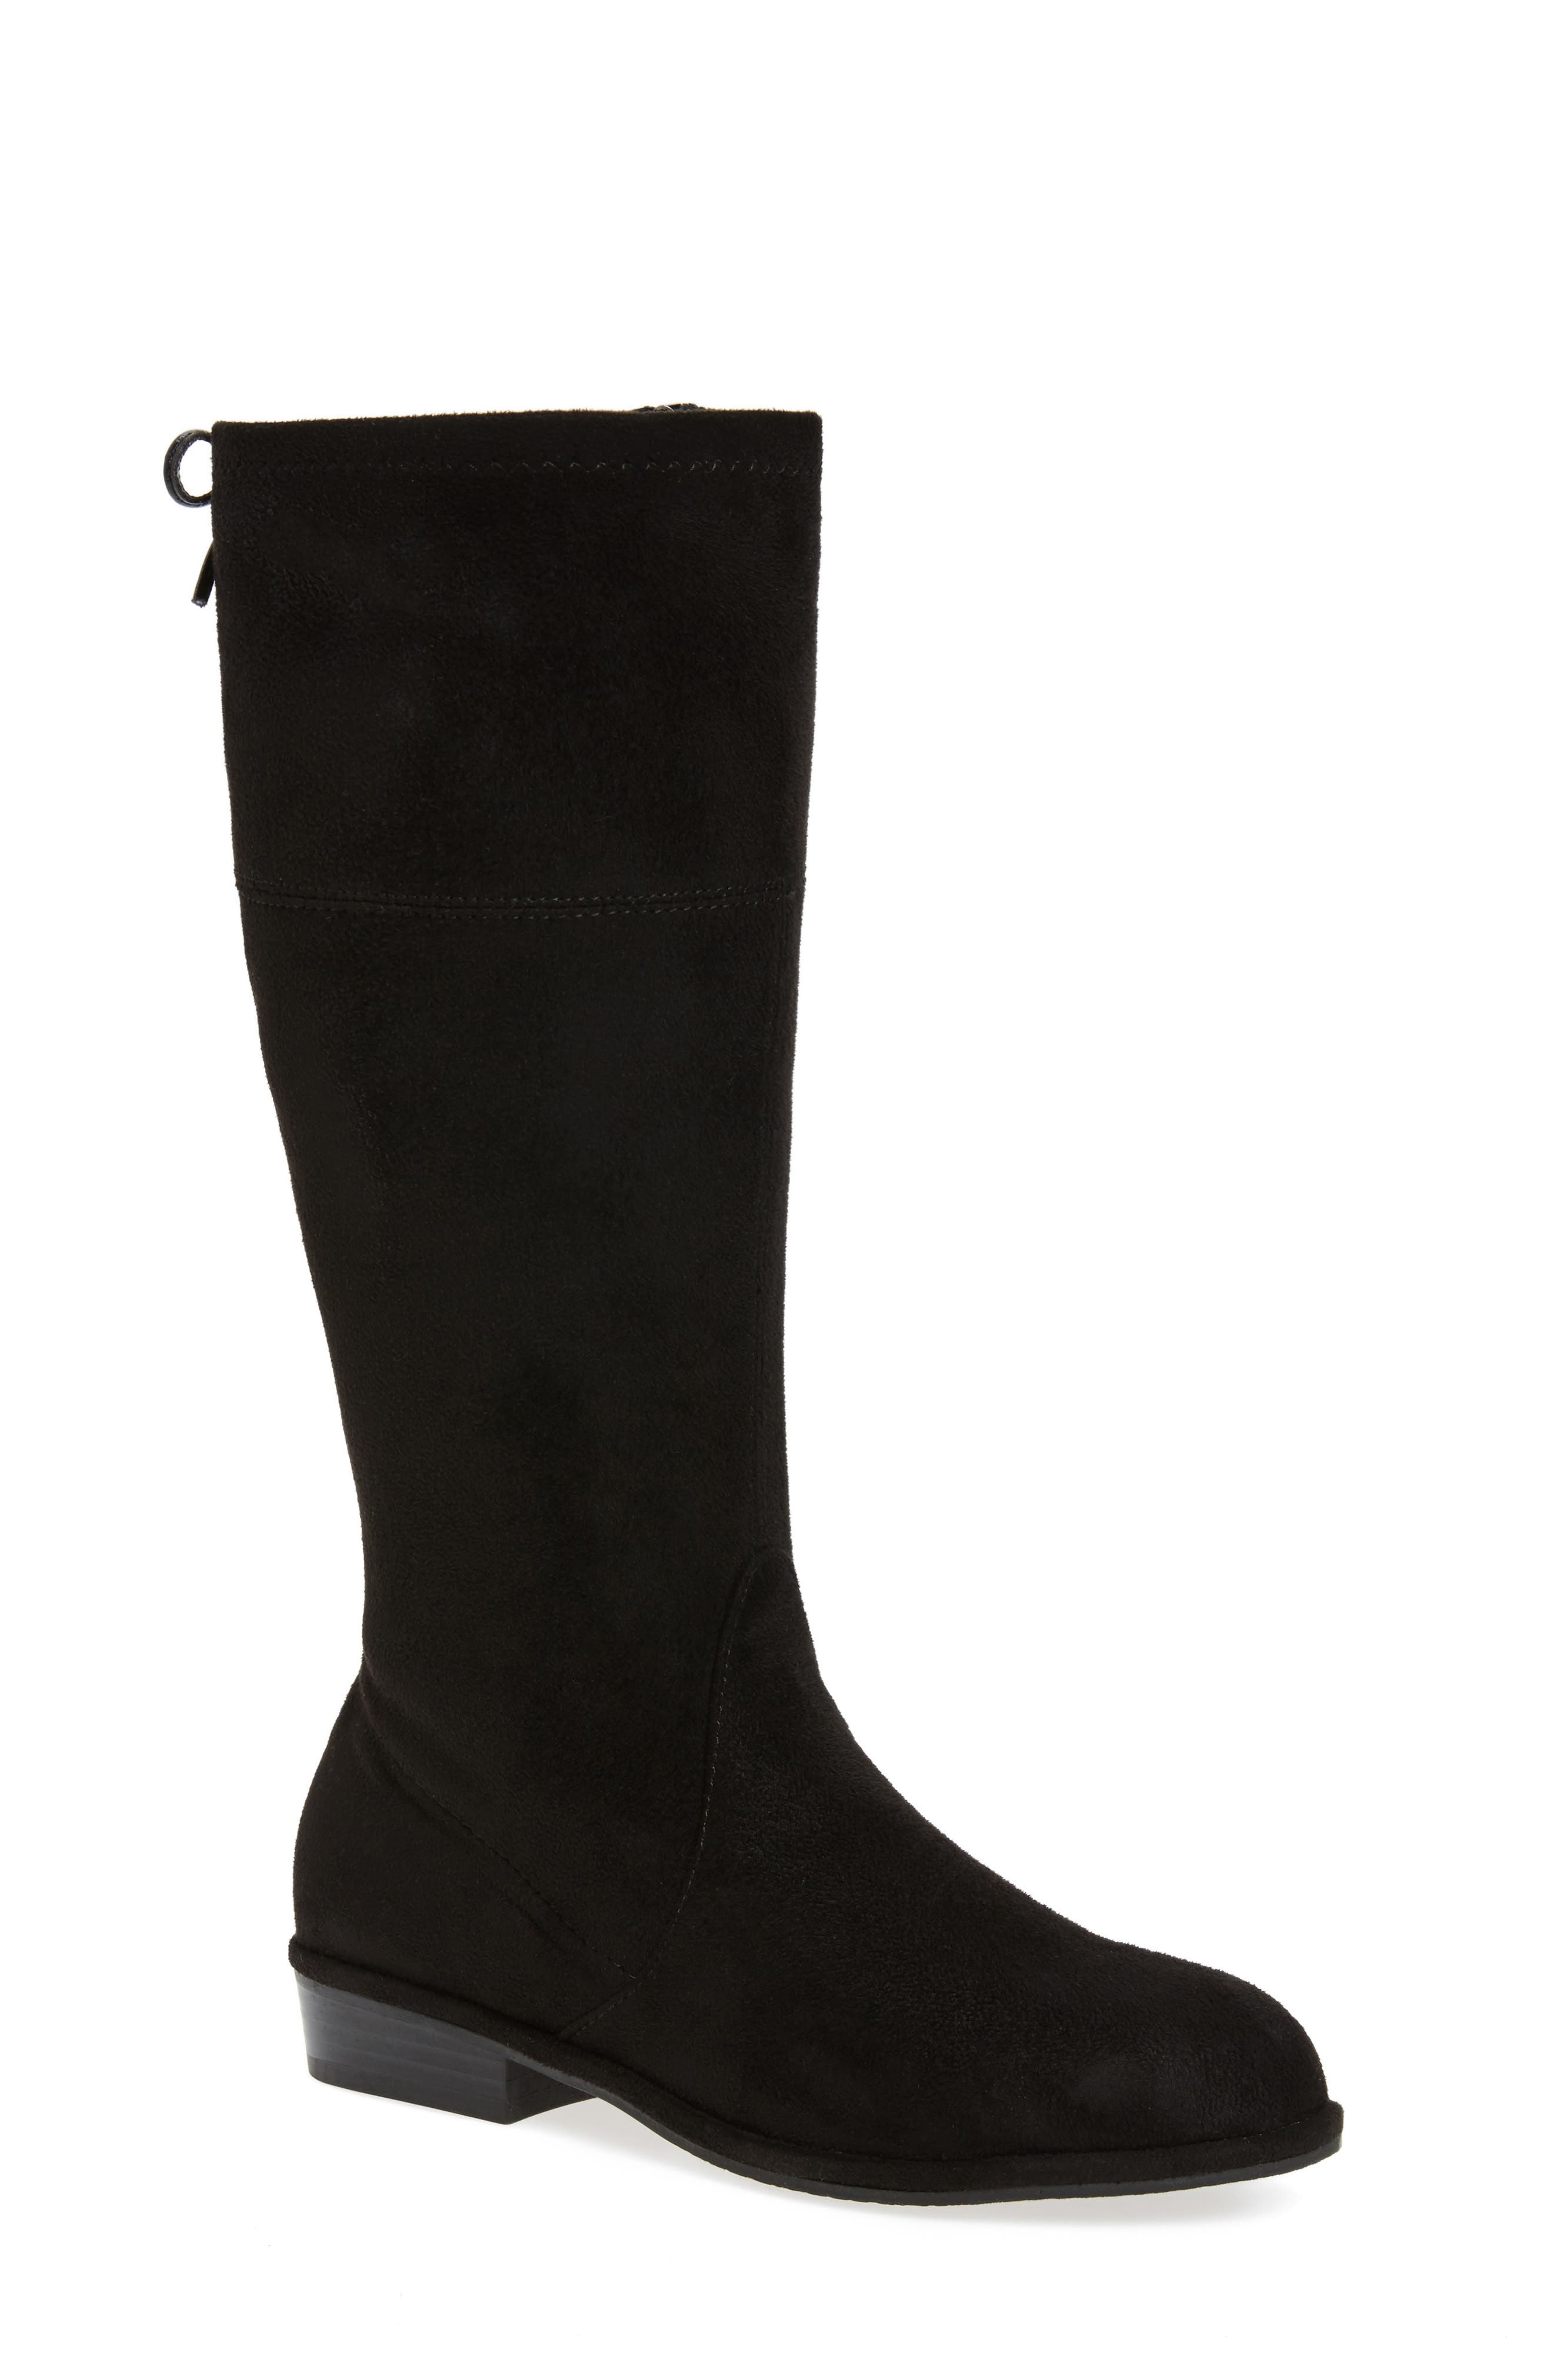 Alternate Image 1 Selected - Stuart Weitzman Lowland Bow Riding Boot (Toddler, Little Kid & Big Kid)